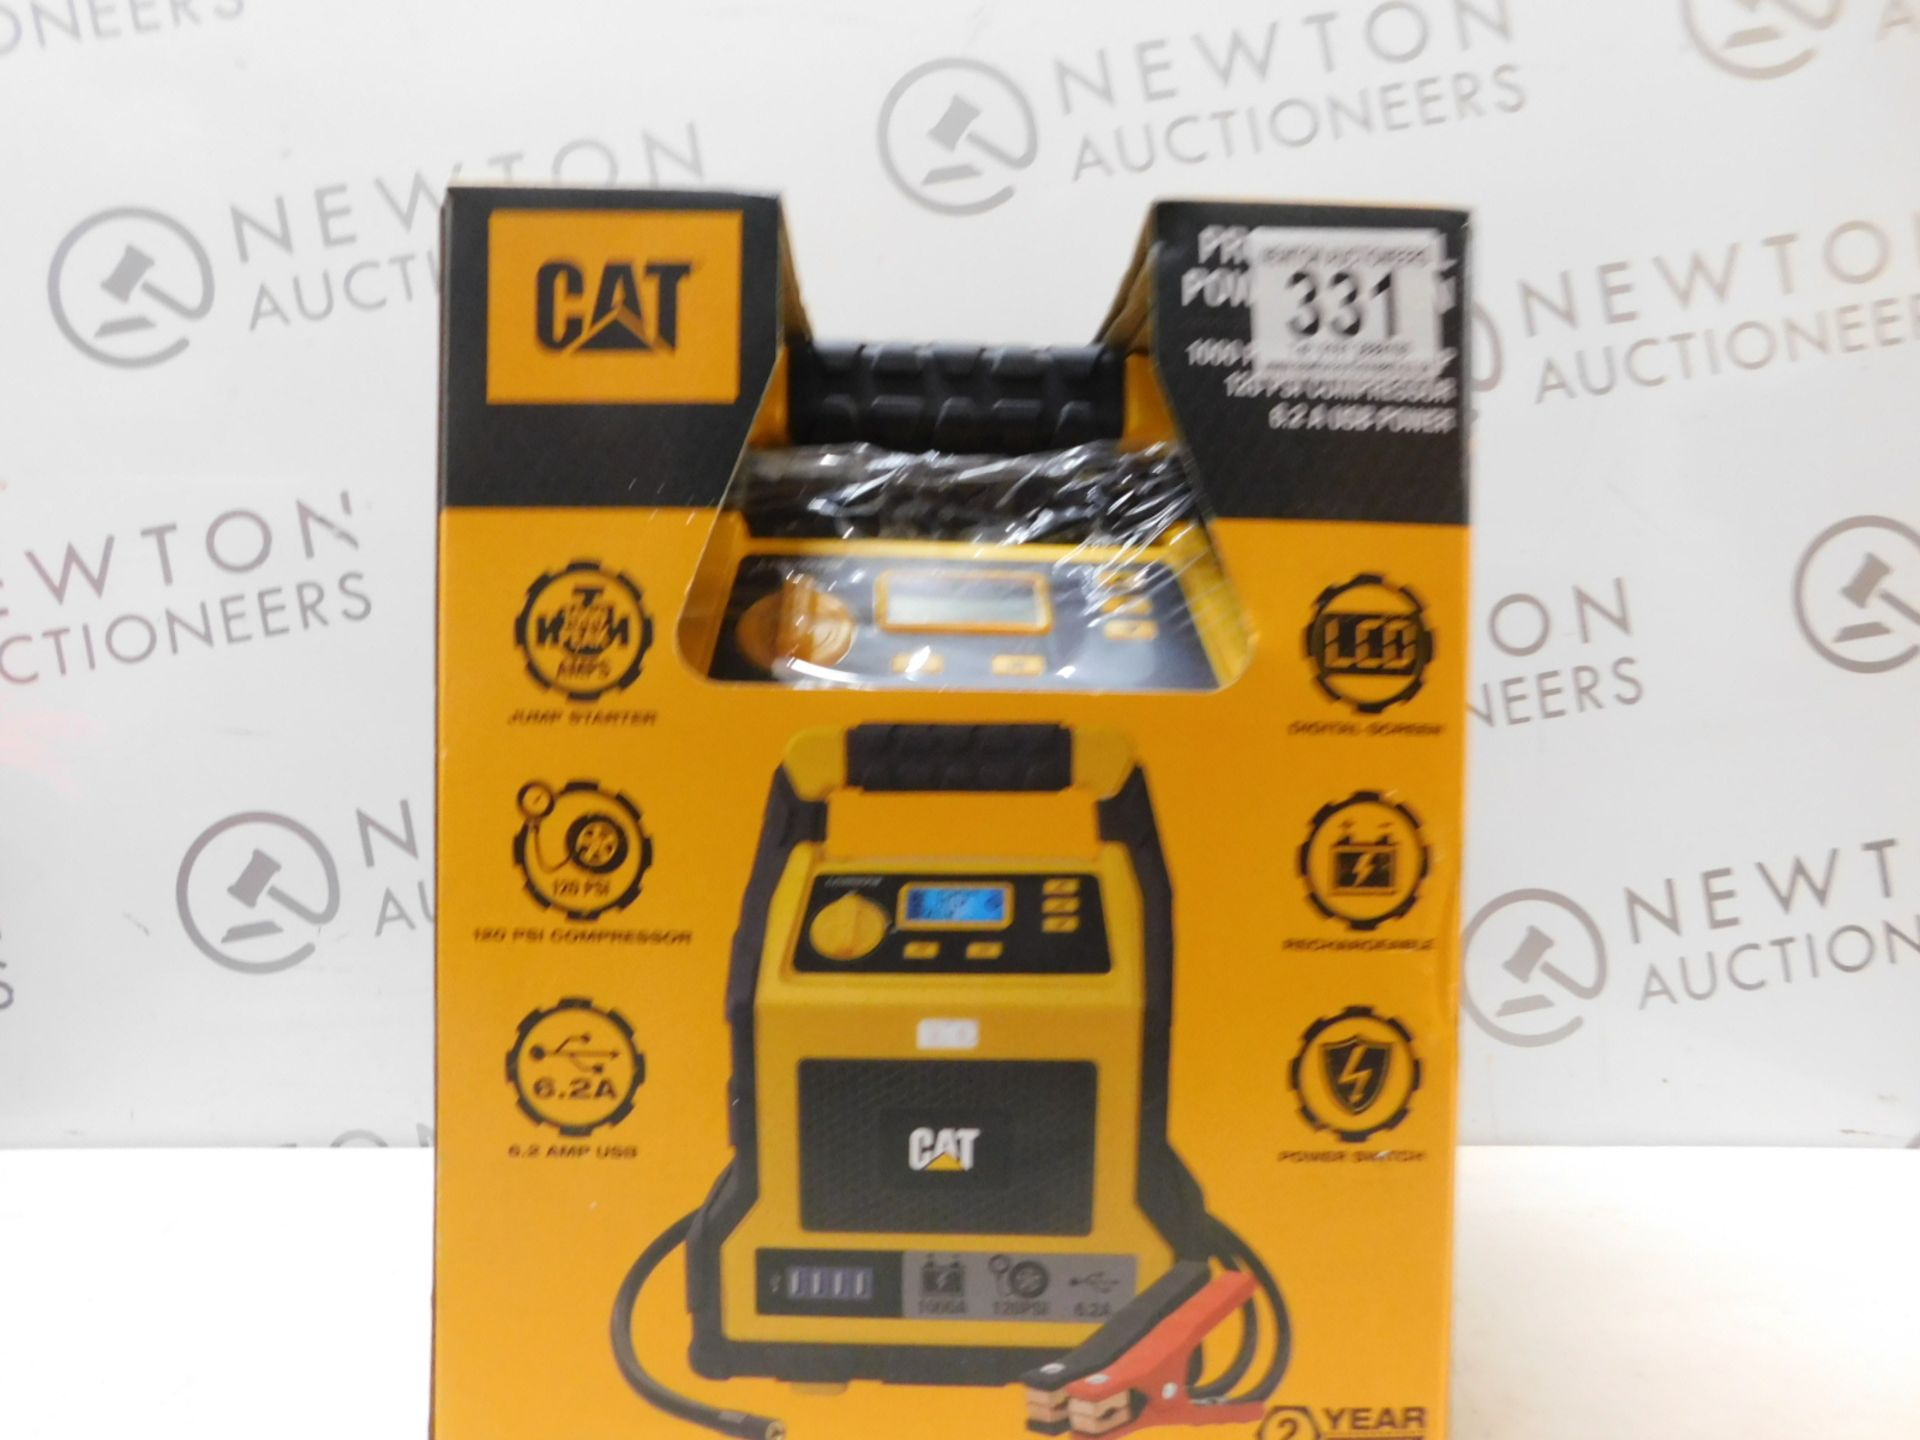 Lot 331 - 1 BOXED CAT 3-IN-1 PROFESSIONAL POWERSTATION WITH JUMP STARTER, USB & COMPRESSOR RRP £129.99